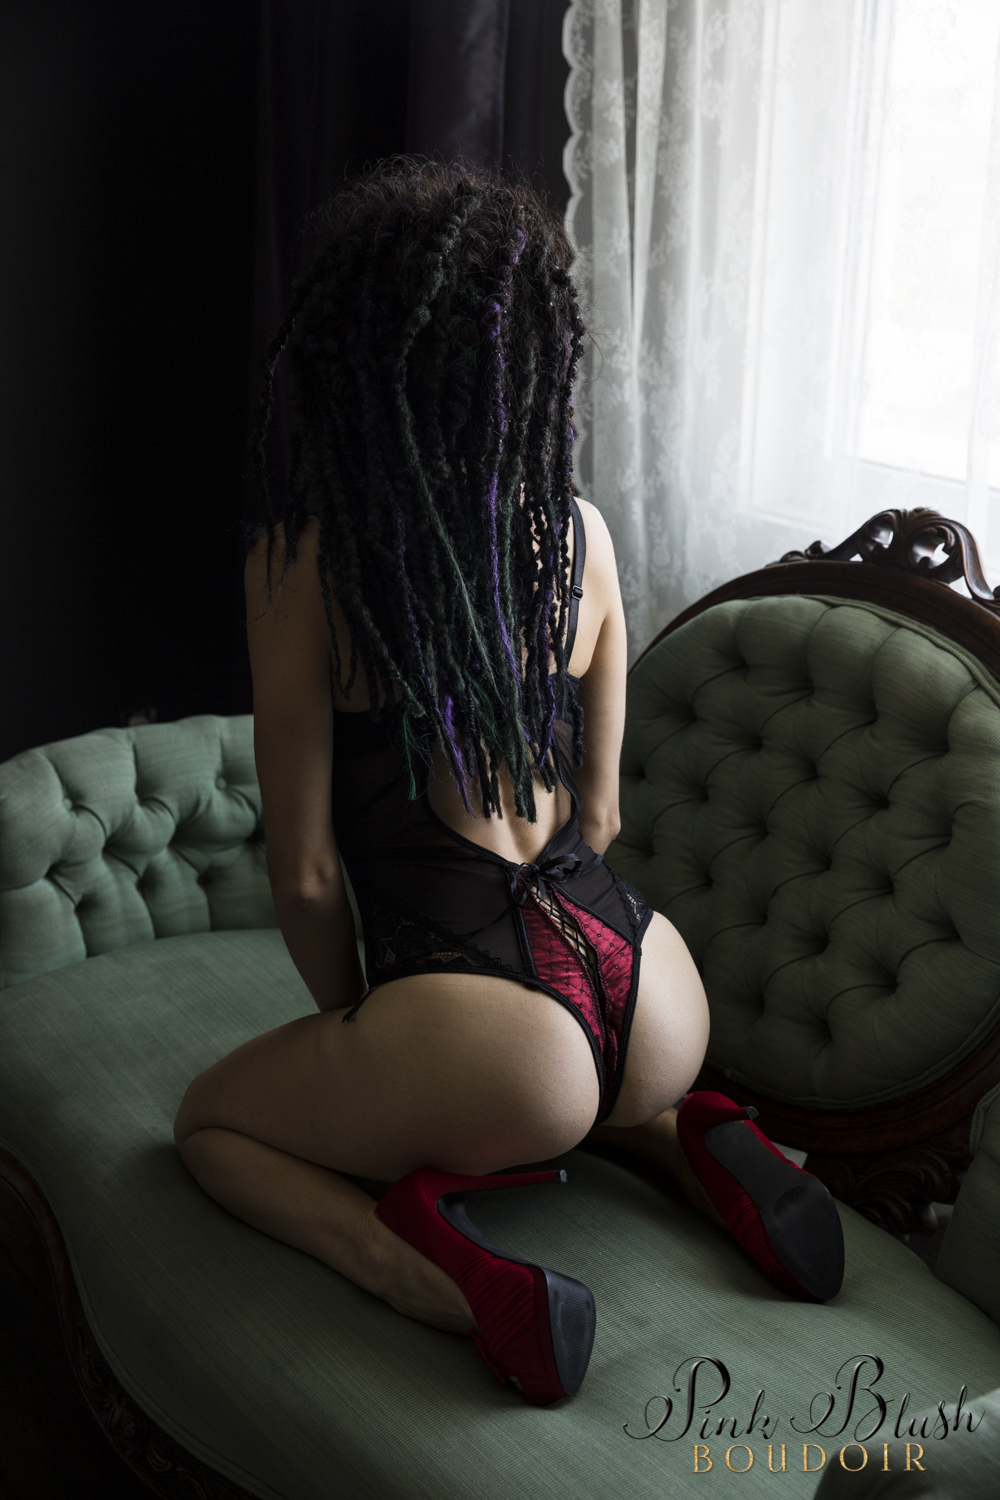 Boudoir Photography Edmonton, a woman kneeling on her knees in a black and red bodysuit, butt showing